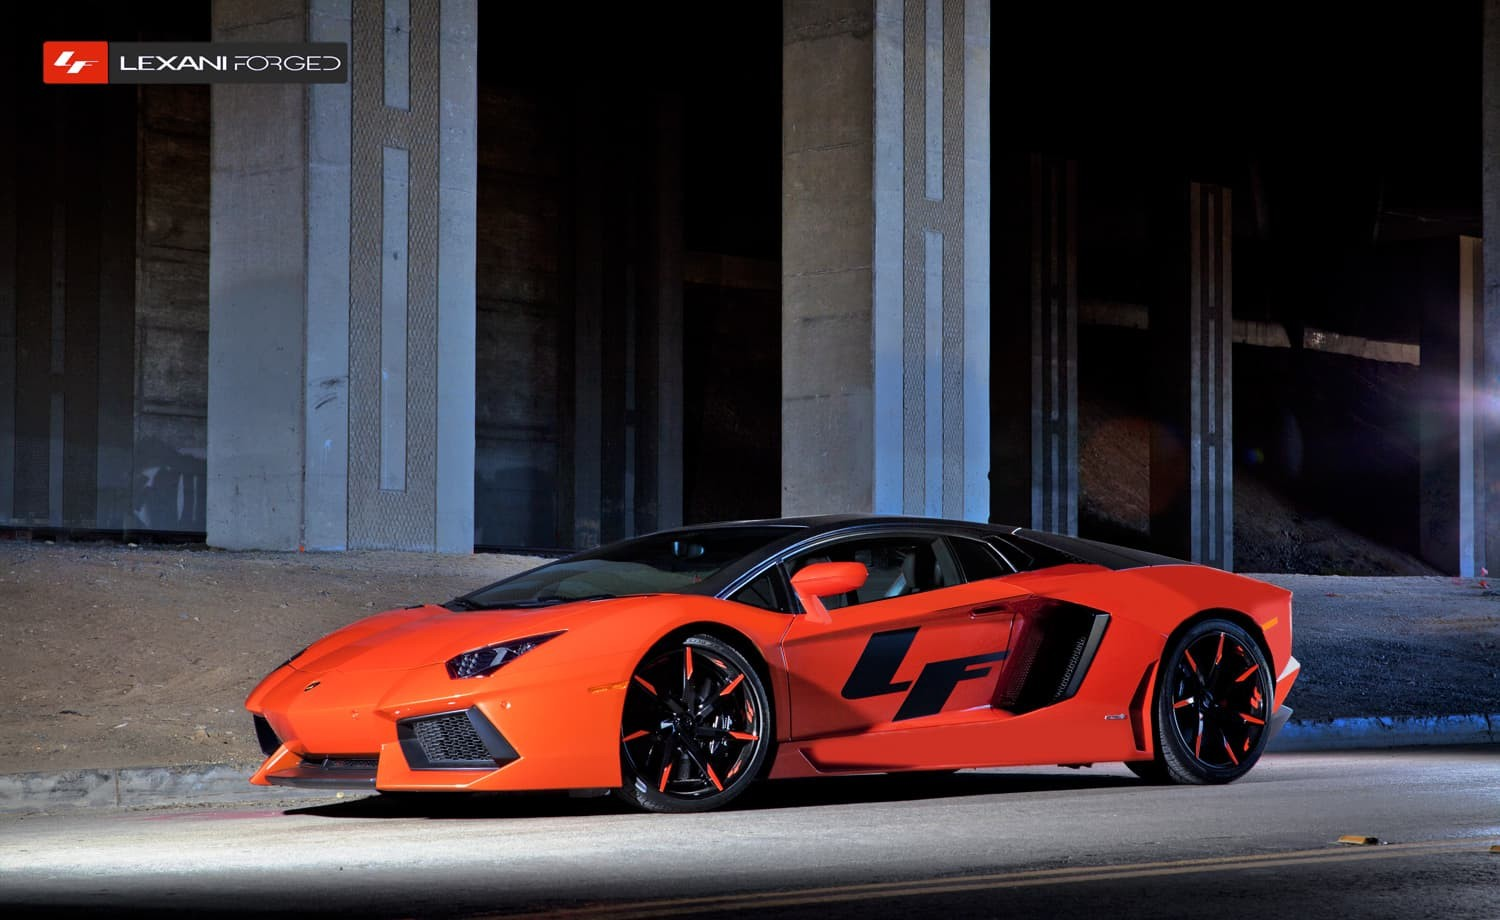 The 2013 Lamborghini Aventador with color-matched LZ-109.